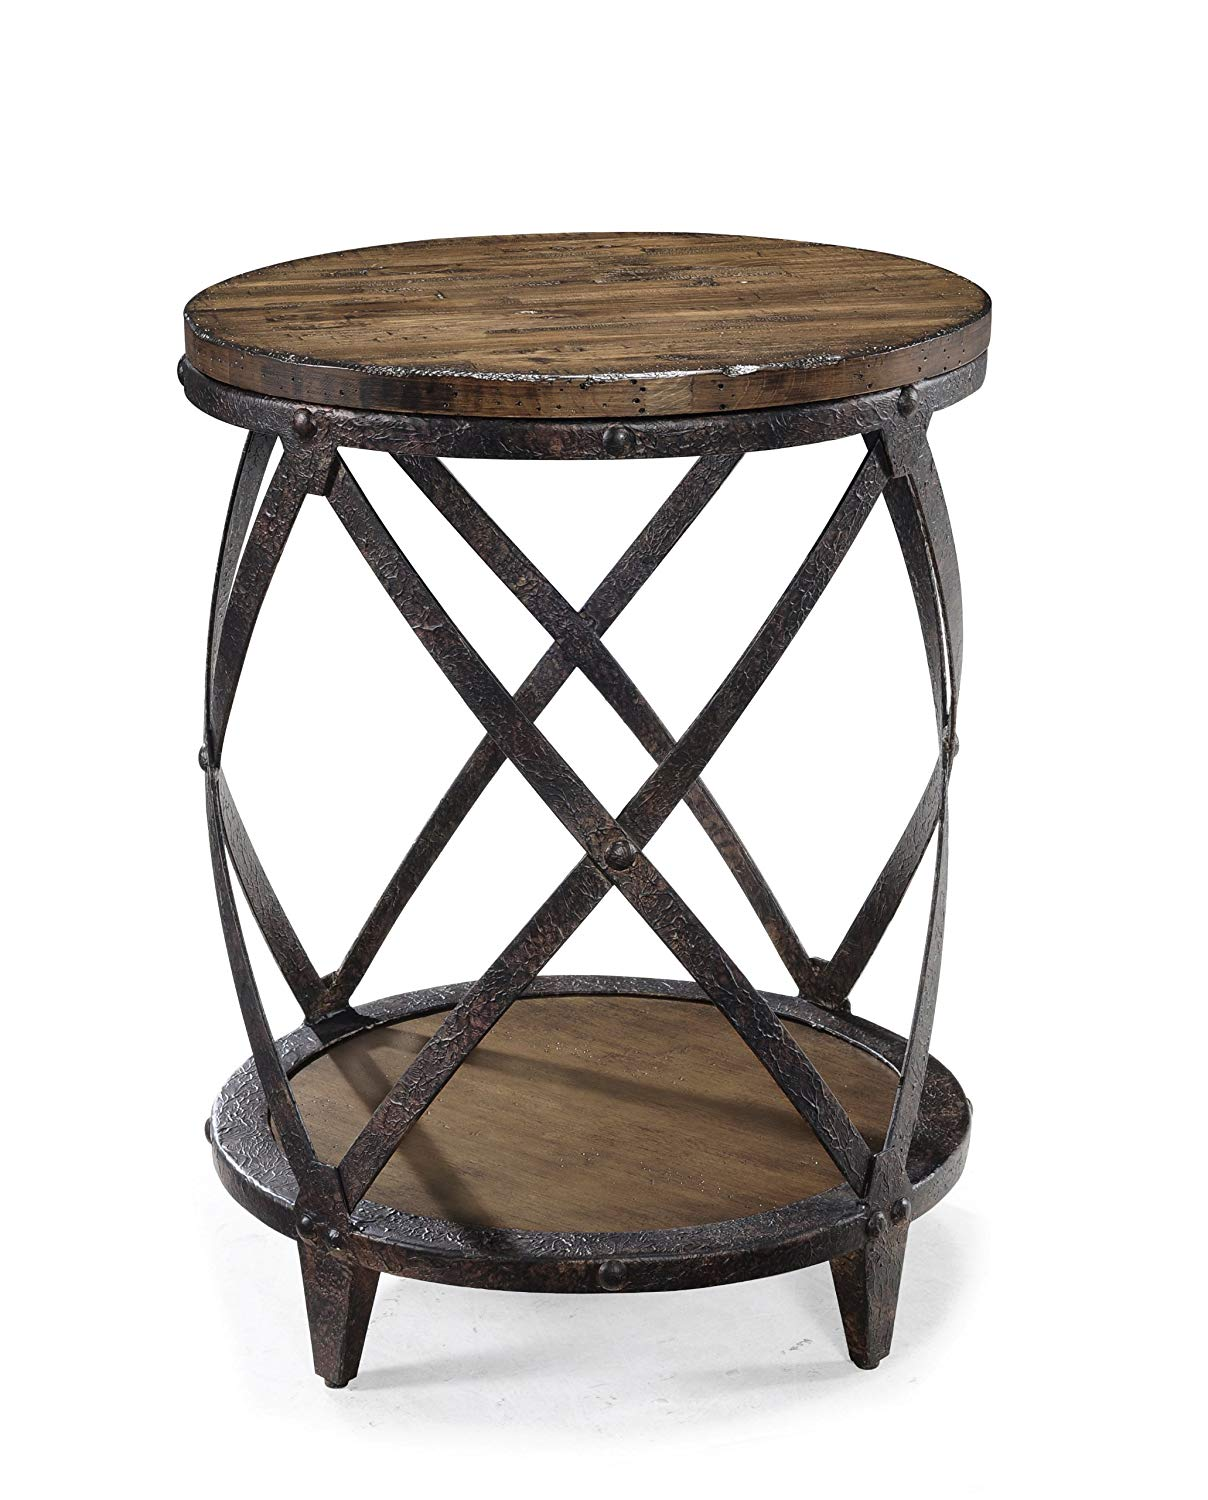 black pipe table the super unbelievable old wood end tables ideas magnussen pinebrook distressed natural pine round accent kitchen dining modern for living room tall side cherry